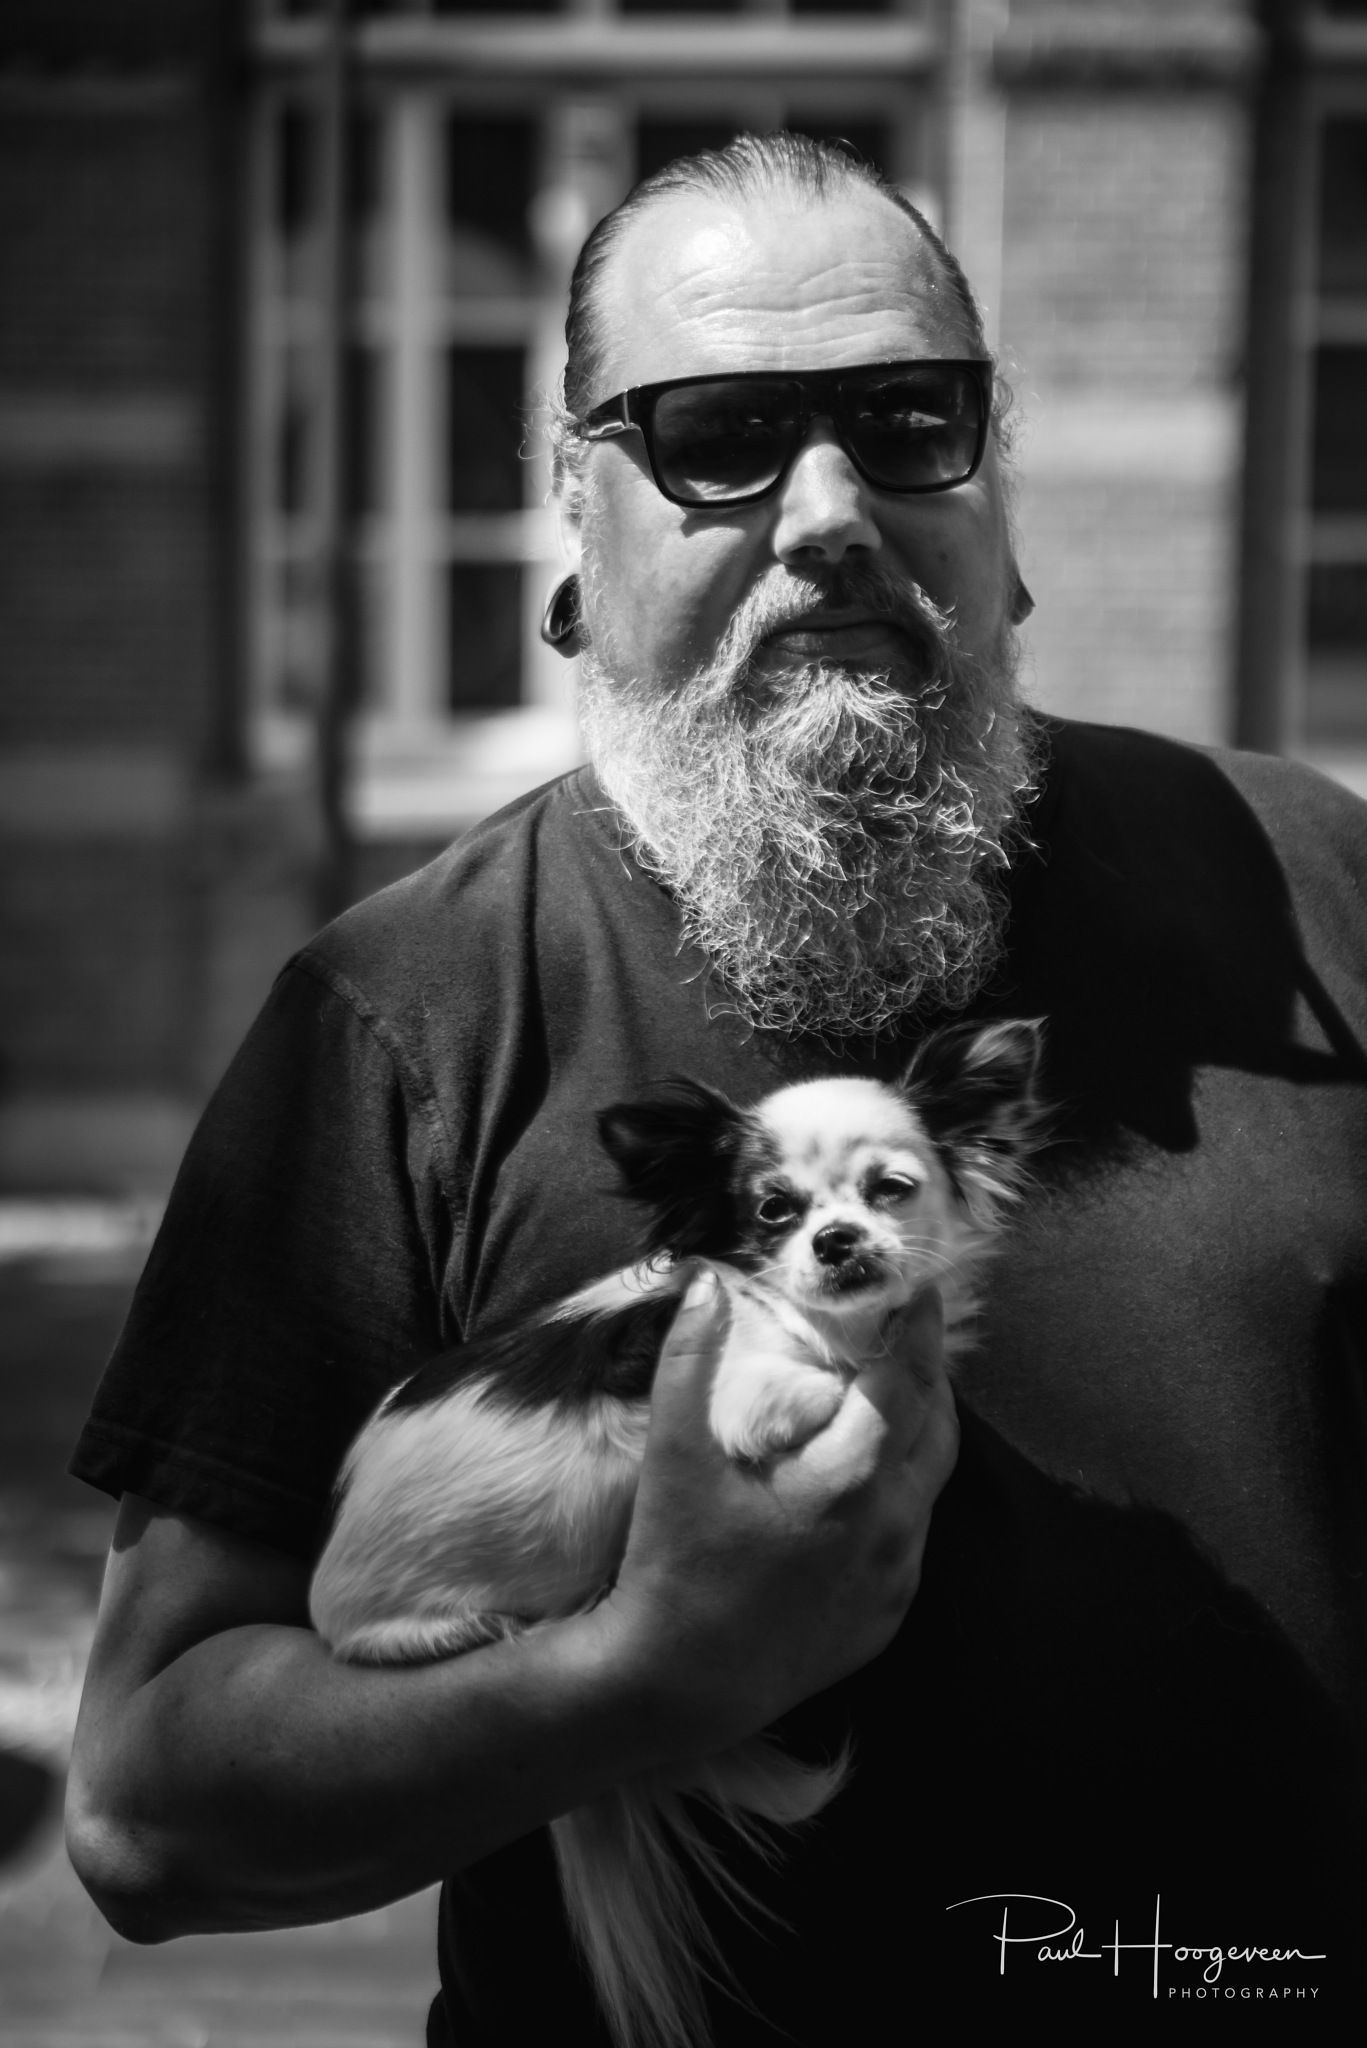 Man with dog by Paul Hoogeveen Photography